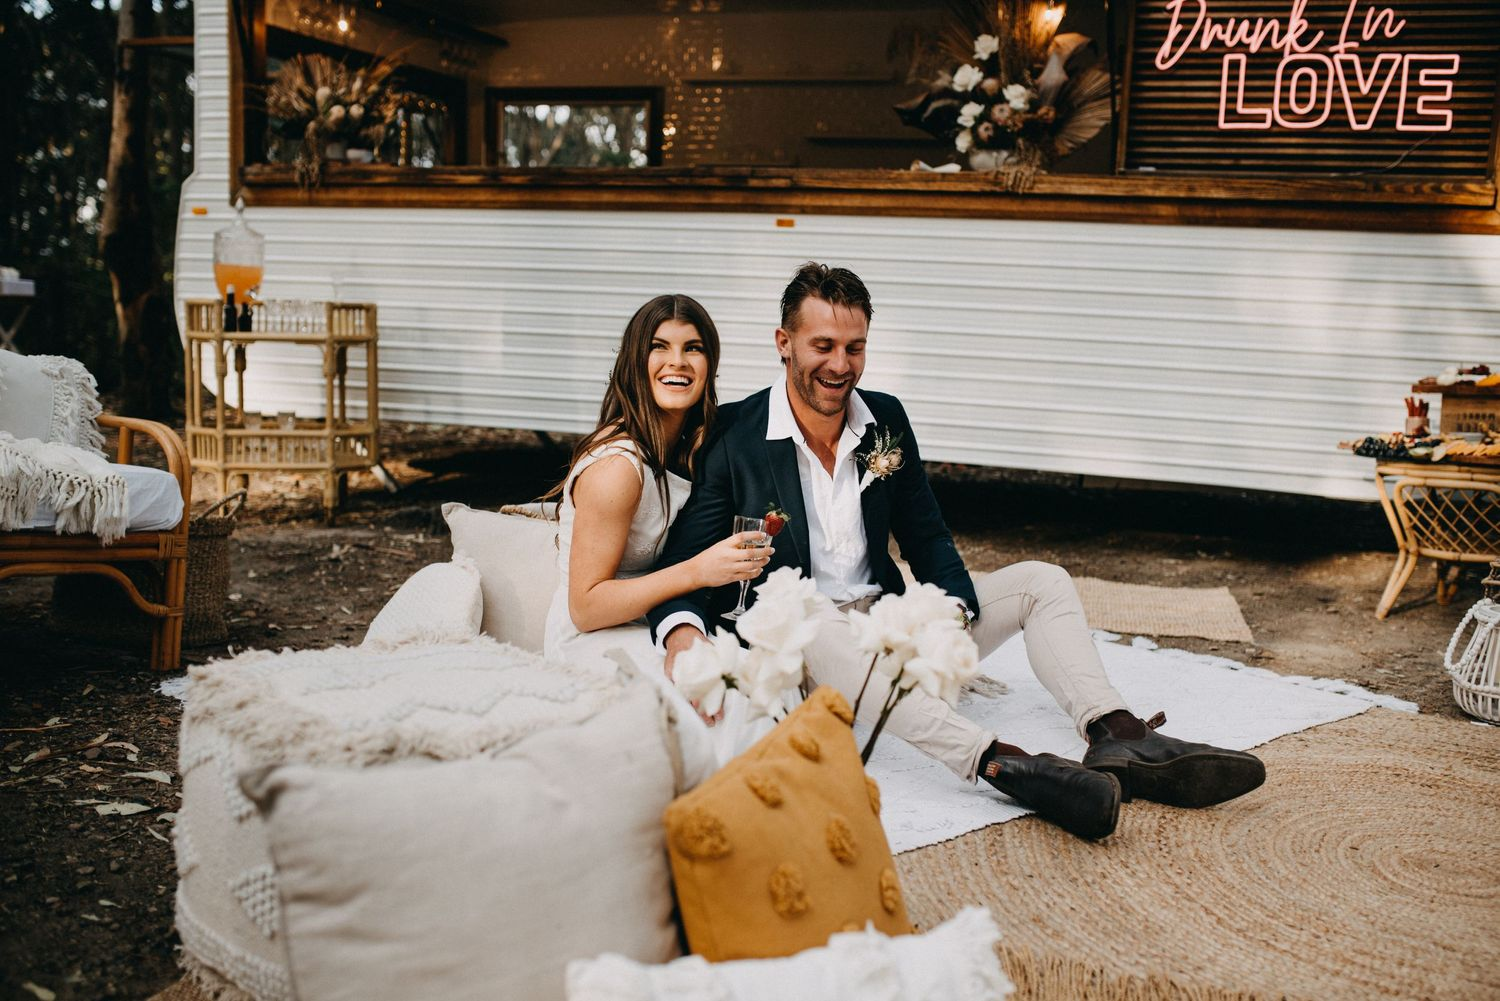 wedding photography of couple sitting with caravan glenrock forest newcastle nsw